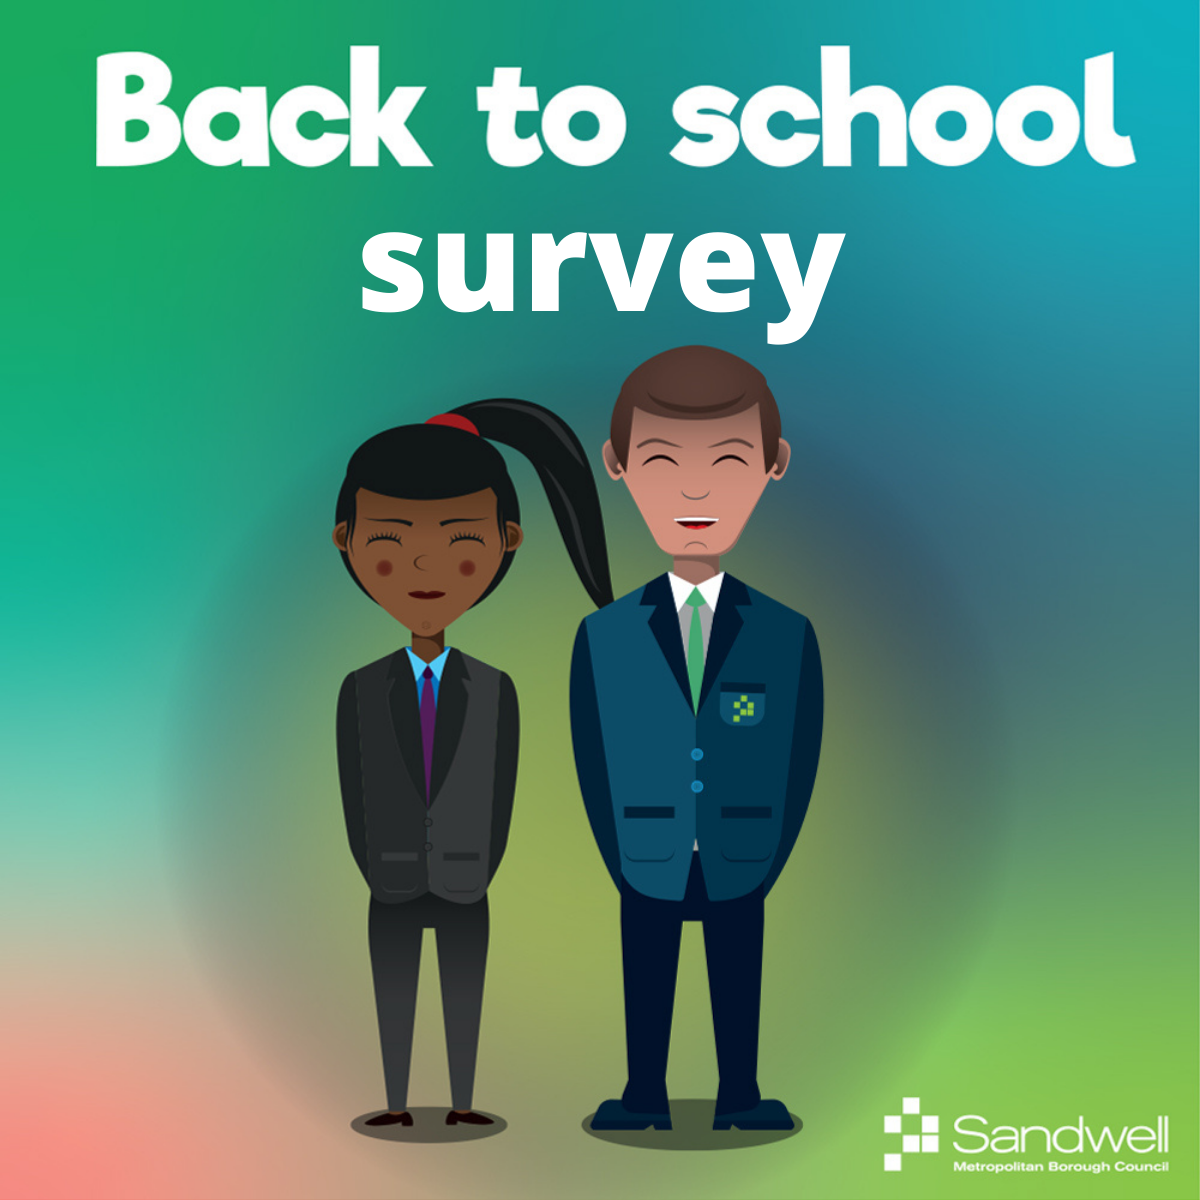 Back to school survey graphic